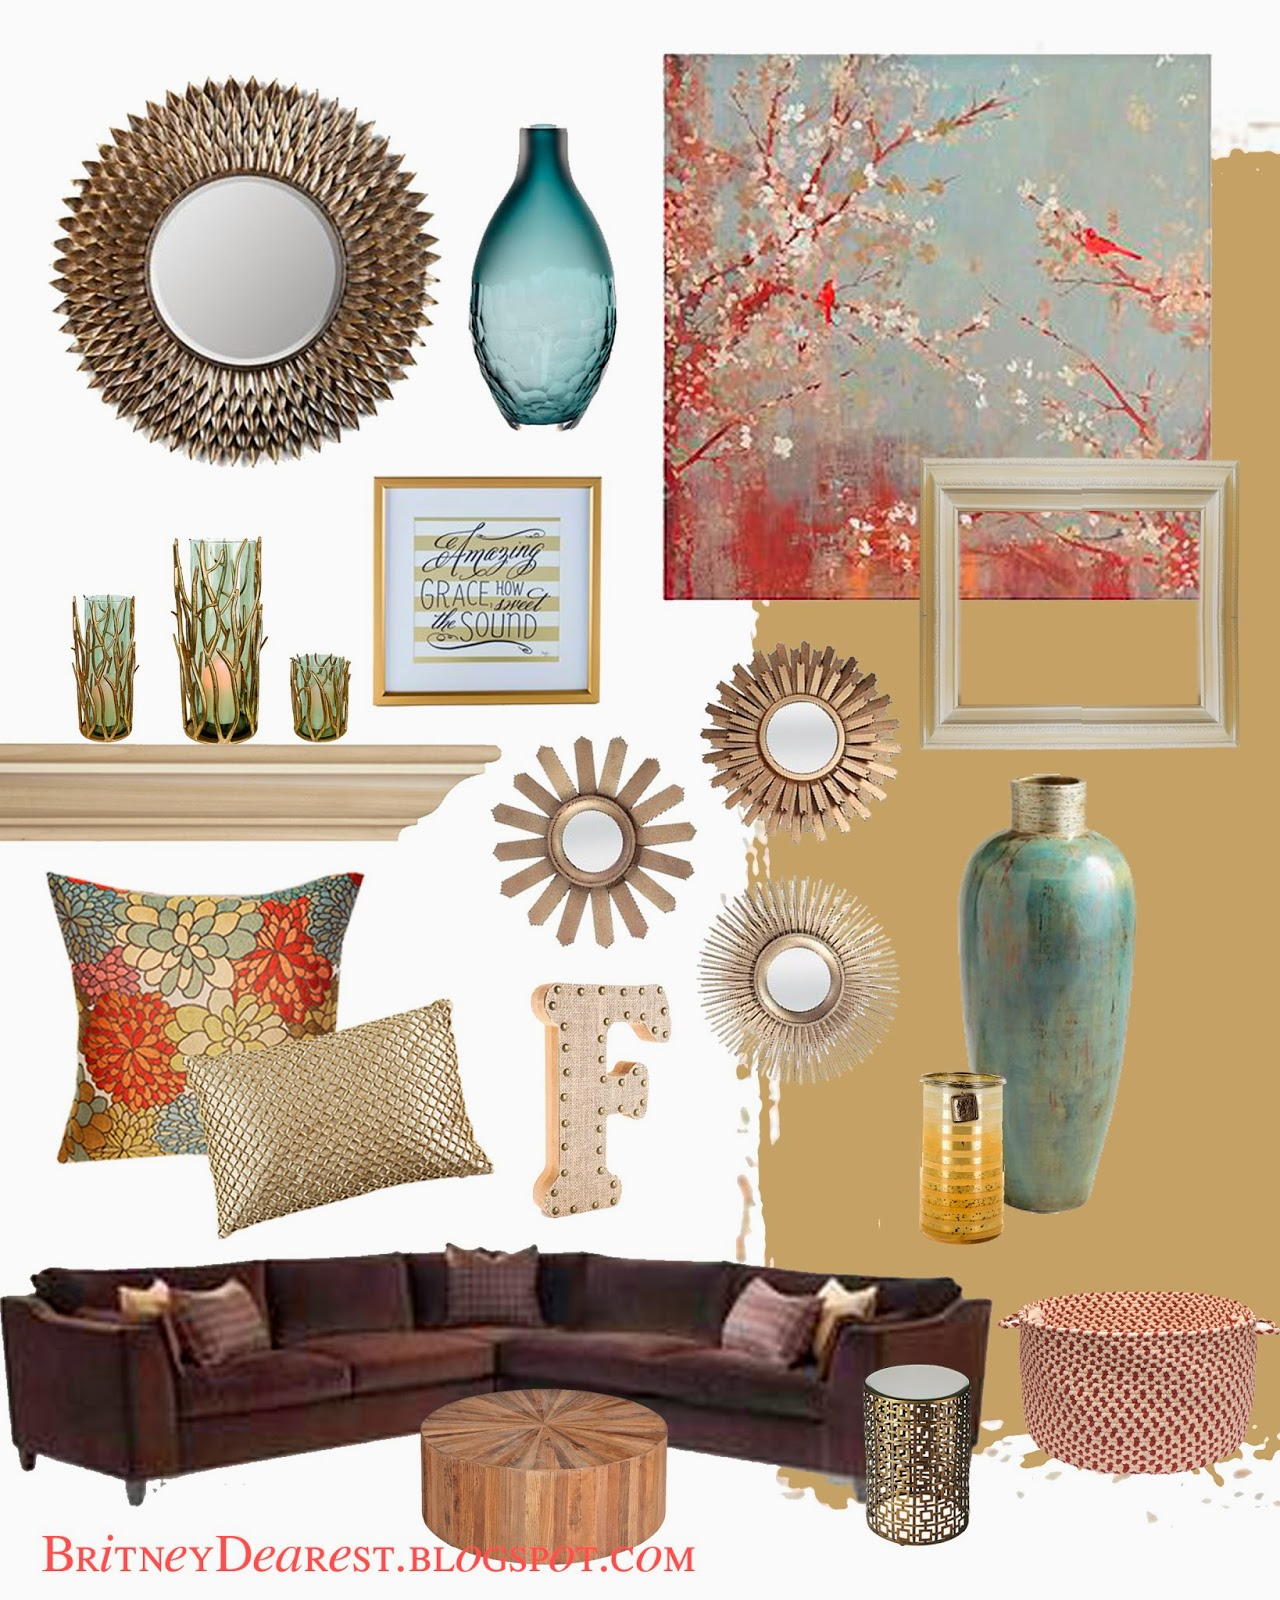 Britney Dearest: Living Room Style Ideas